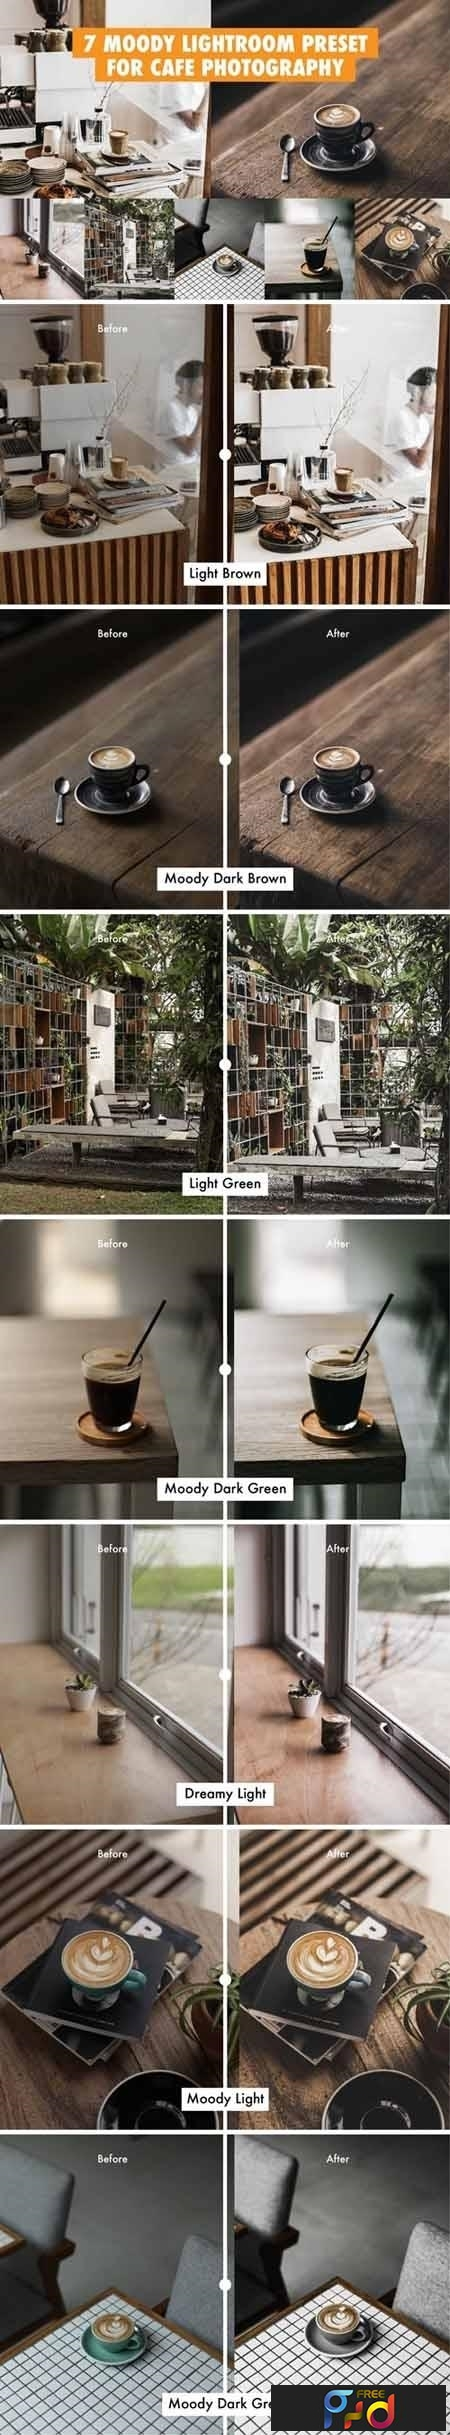 7 Moody Lightroom Preset For Cafe Photography 1